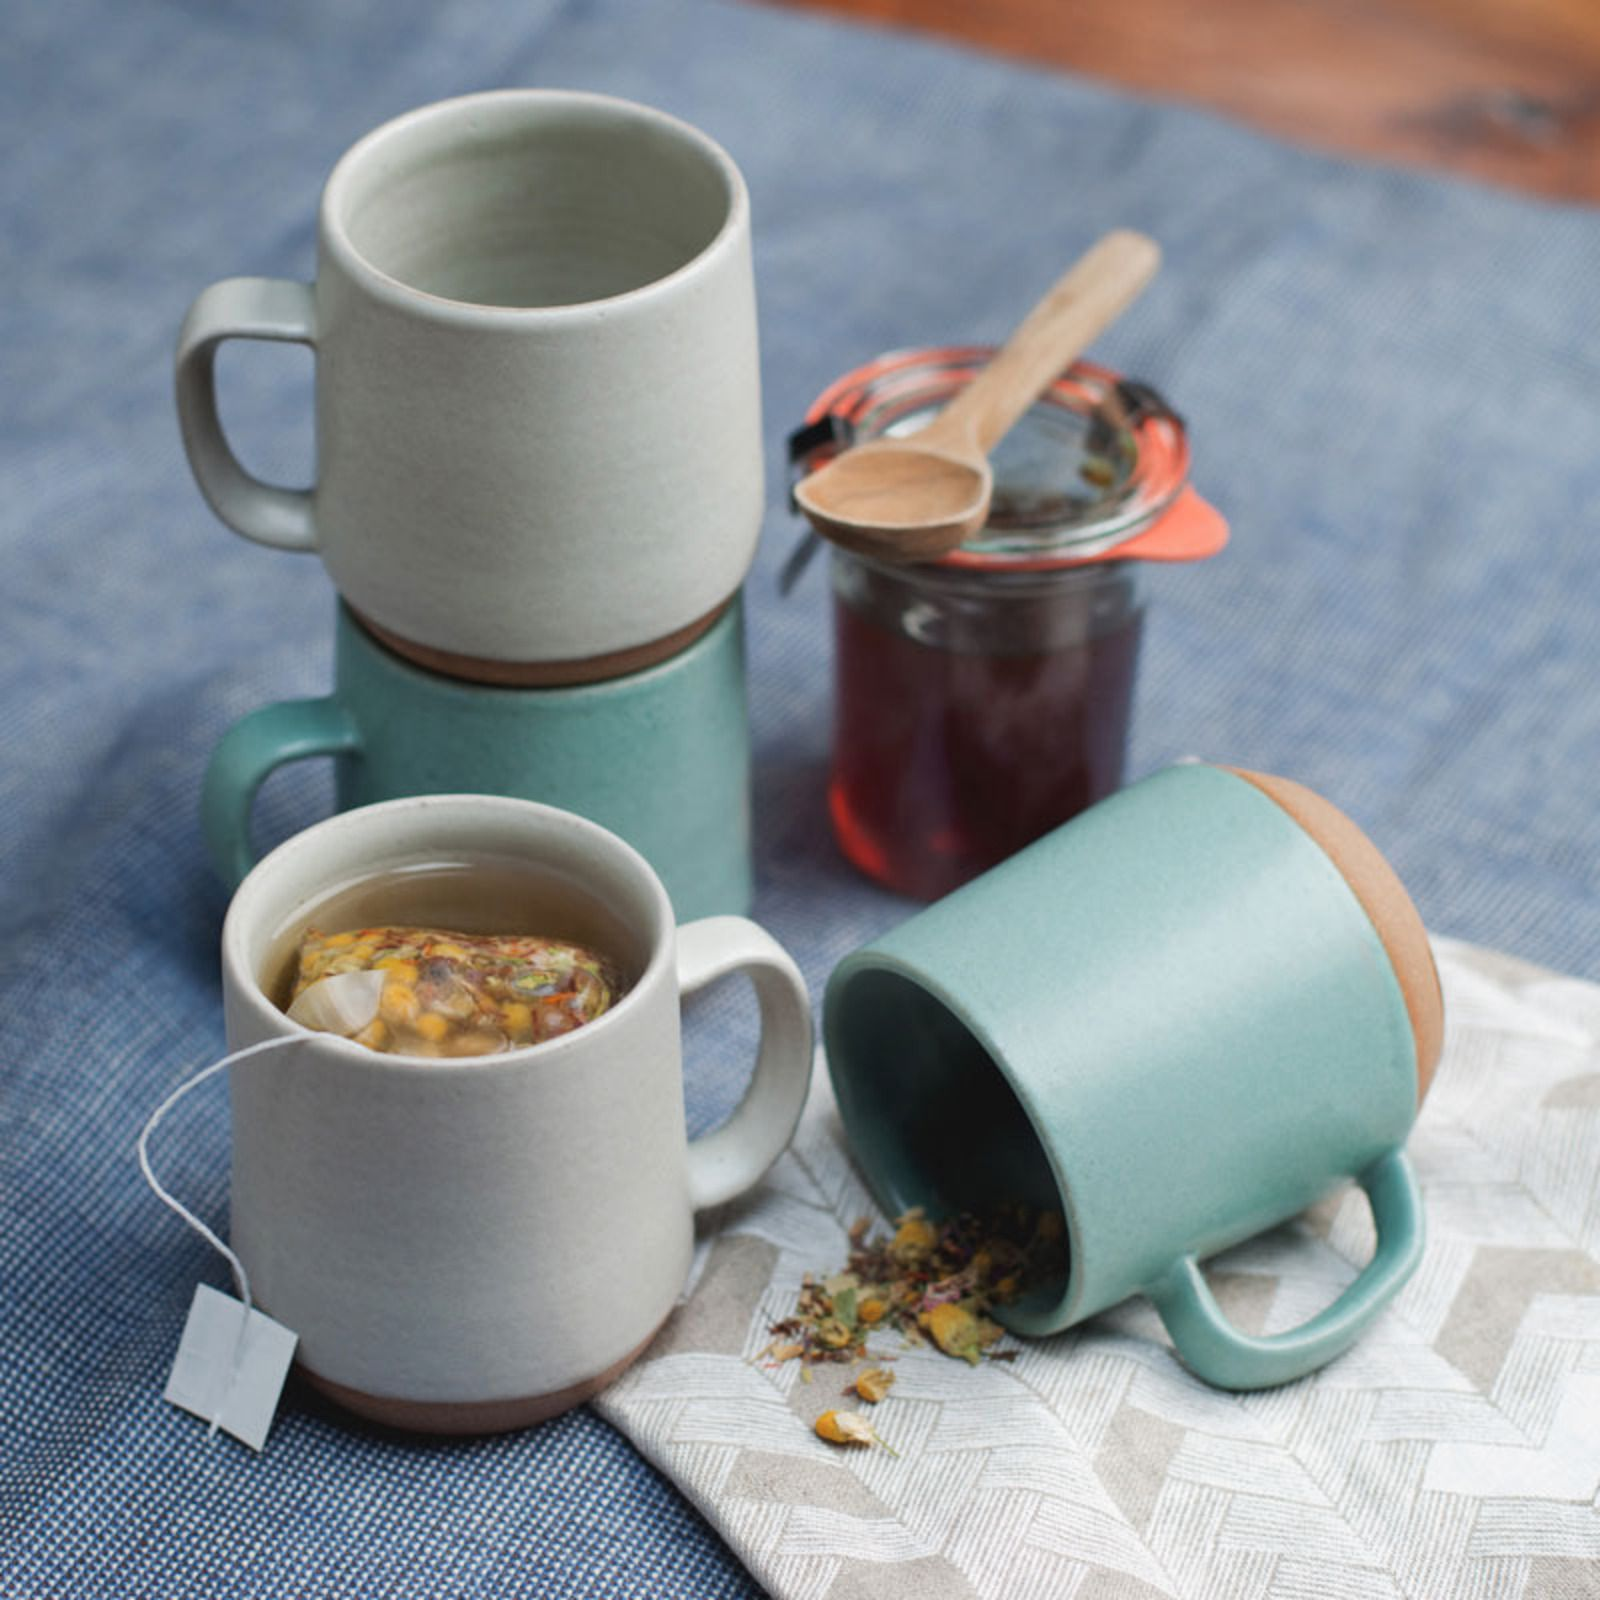 Mazama Ceramic Drinking Vessels   Cups and Foods